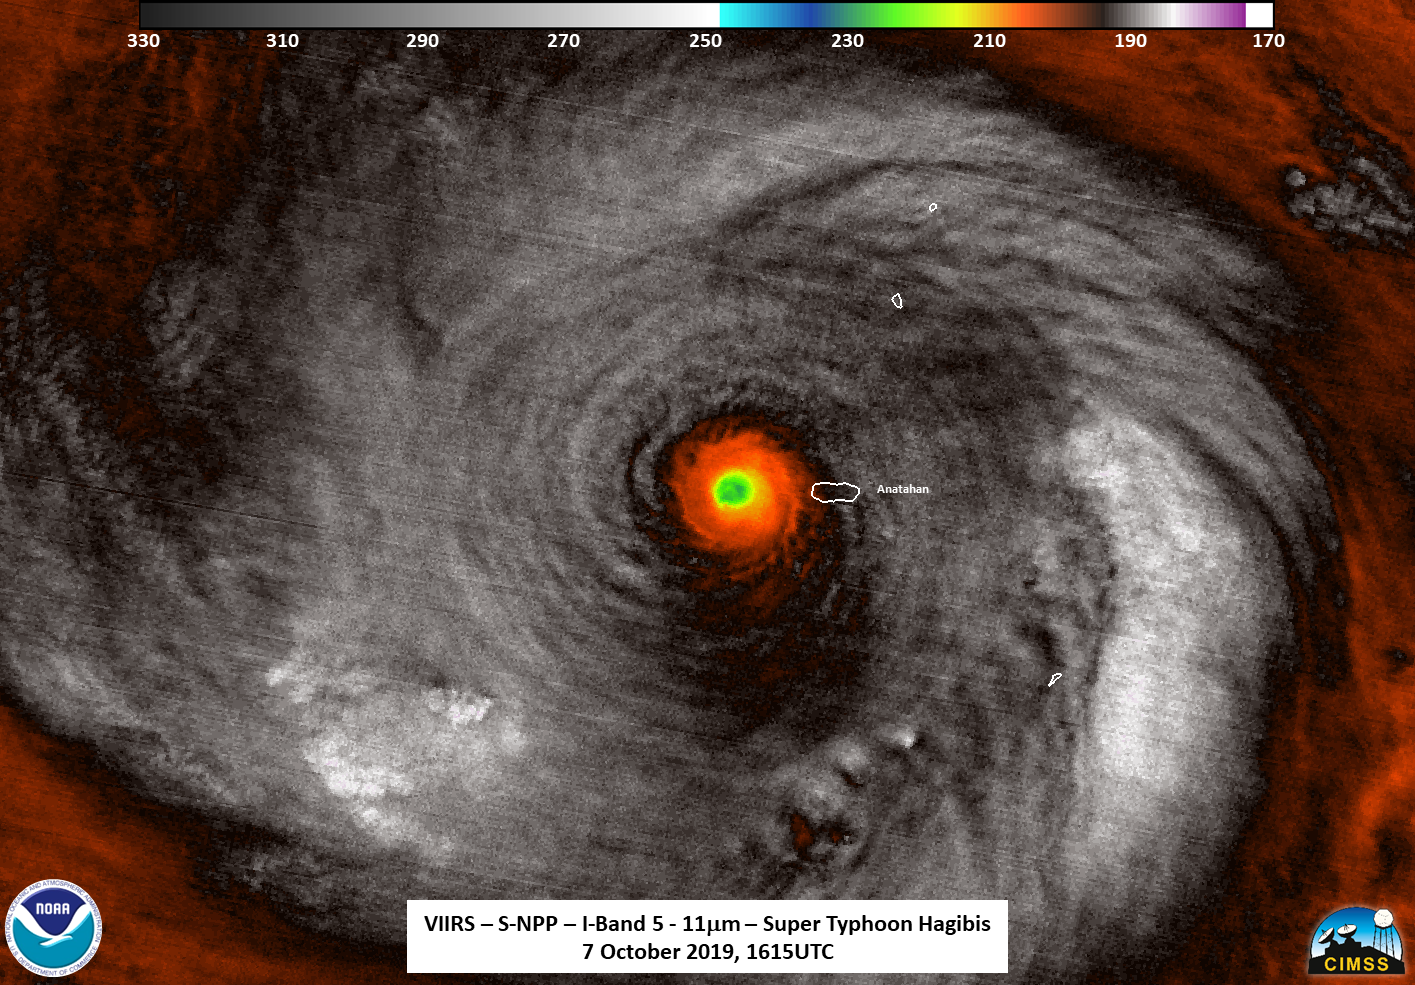 photo:NASA/NOAA/UWM-CIMSS, William Straka III;desc: NASA-NOAA's Suomi NPP satellite passed over Supertyphoon Hagibis and the VIIRS instrument aboard captured this close up image of the storm on Oct. 7 at 12:15 pm. EDT (1615 UTC). Suomi NPP found strongest thunderstorms around the center had cloud top temperatures as cold as 190 Kelvin (gray) or minus 117 degrees Fahrenheit (minus 83.1 Celsius)